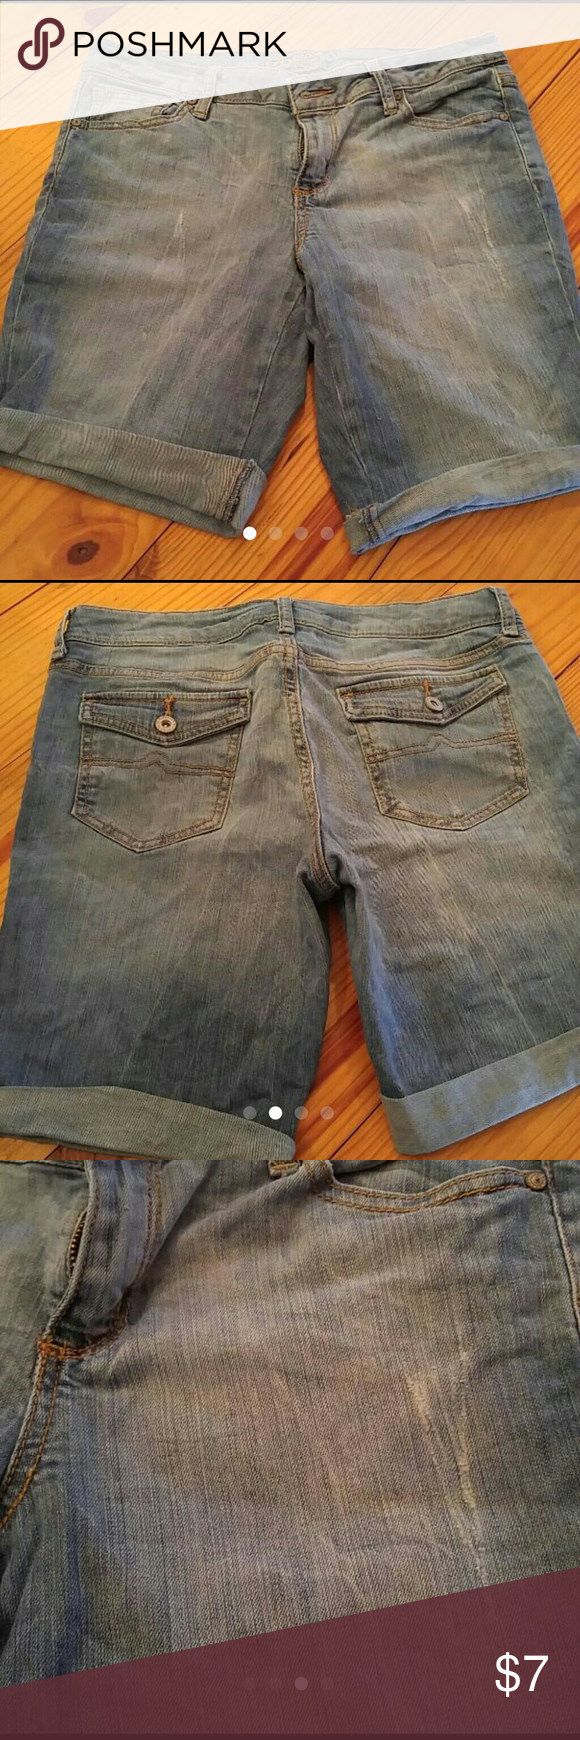 Arizona jean shorts Arizona jean shorts size 7. Mid-length, light wash, slight disressed. In great condition free on any imperfections. Only selling because they are too small. From a clean and smoke-free home. Arizona Jean Company Shorts Jean Shorts